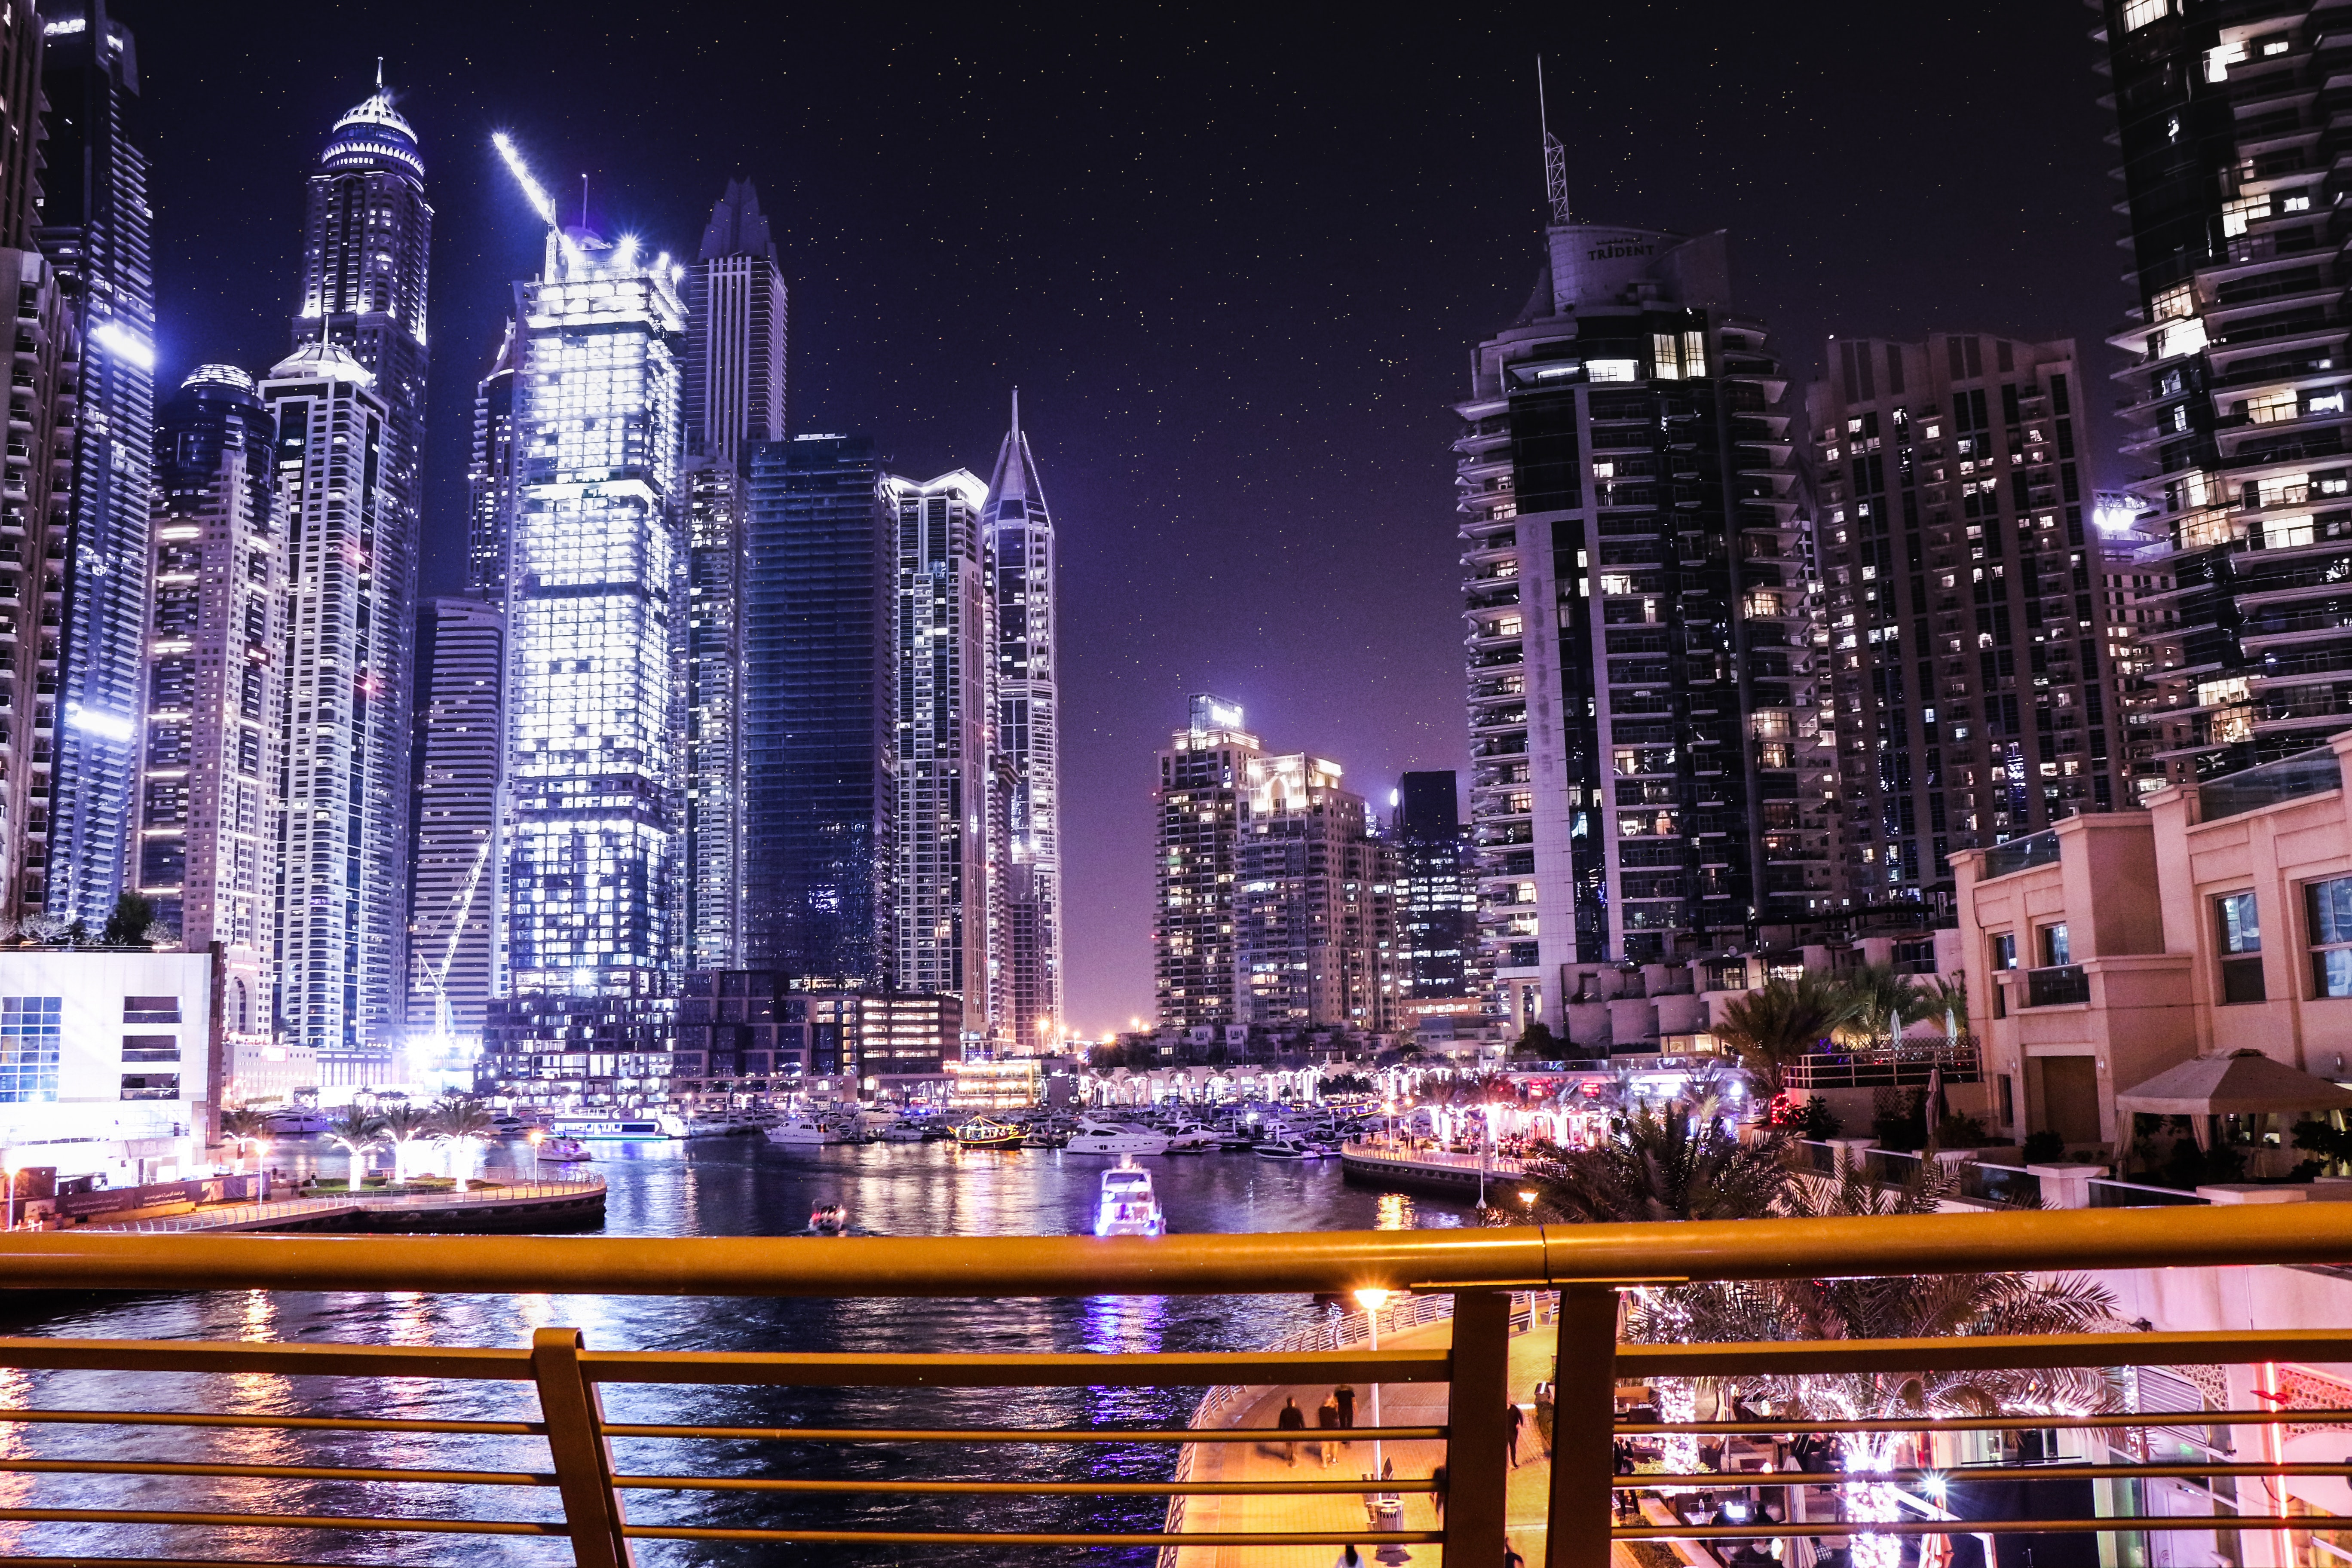 Boats on Body of Water Surrounded by High Rise Buildings, Architectural design, Ship, Night life, Night lights, HQ Photo